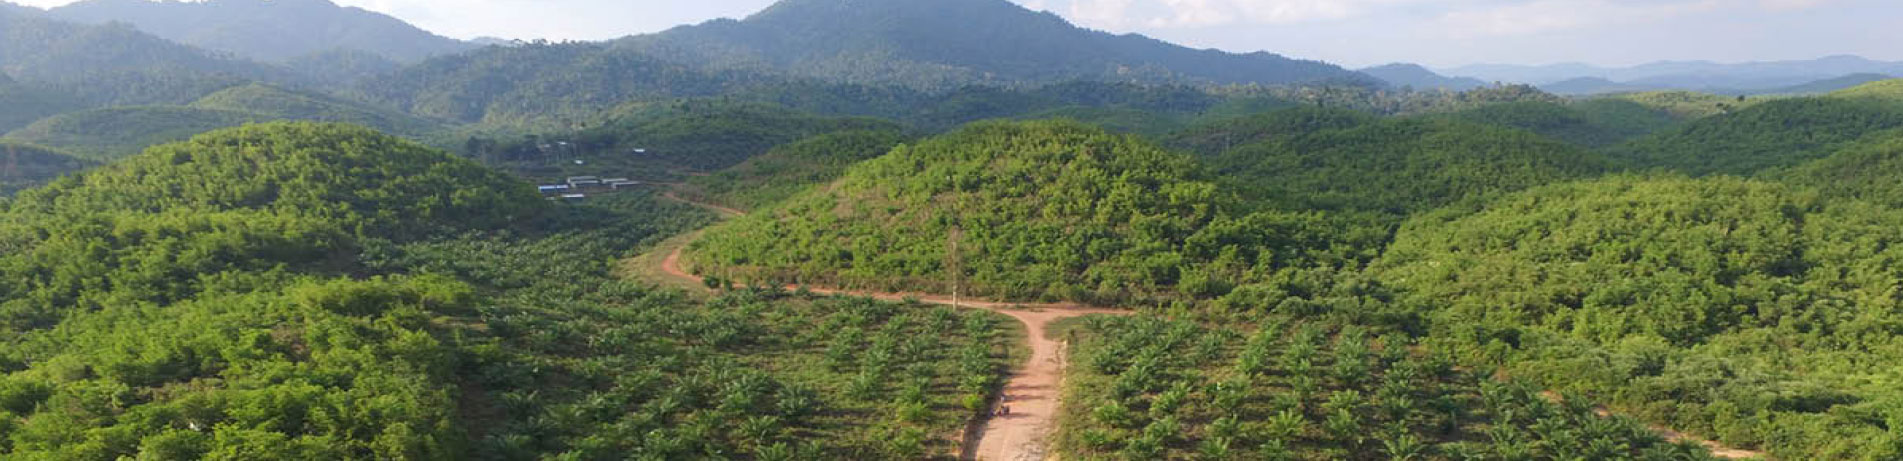 Palm oil plantation, Myanmar